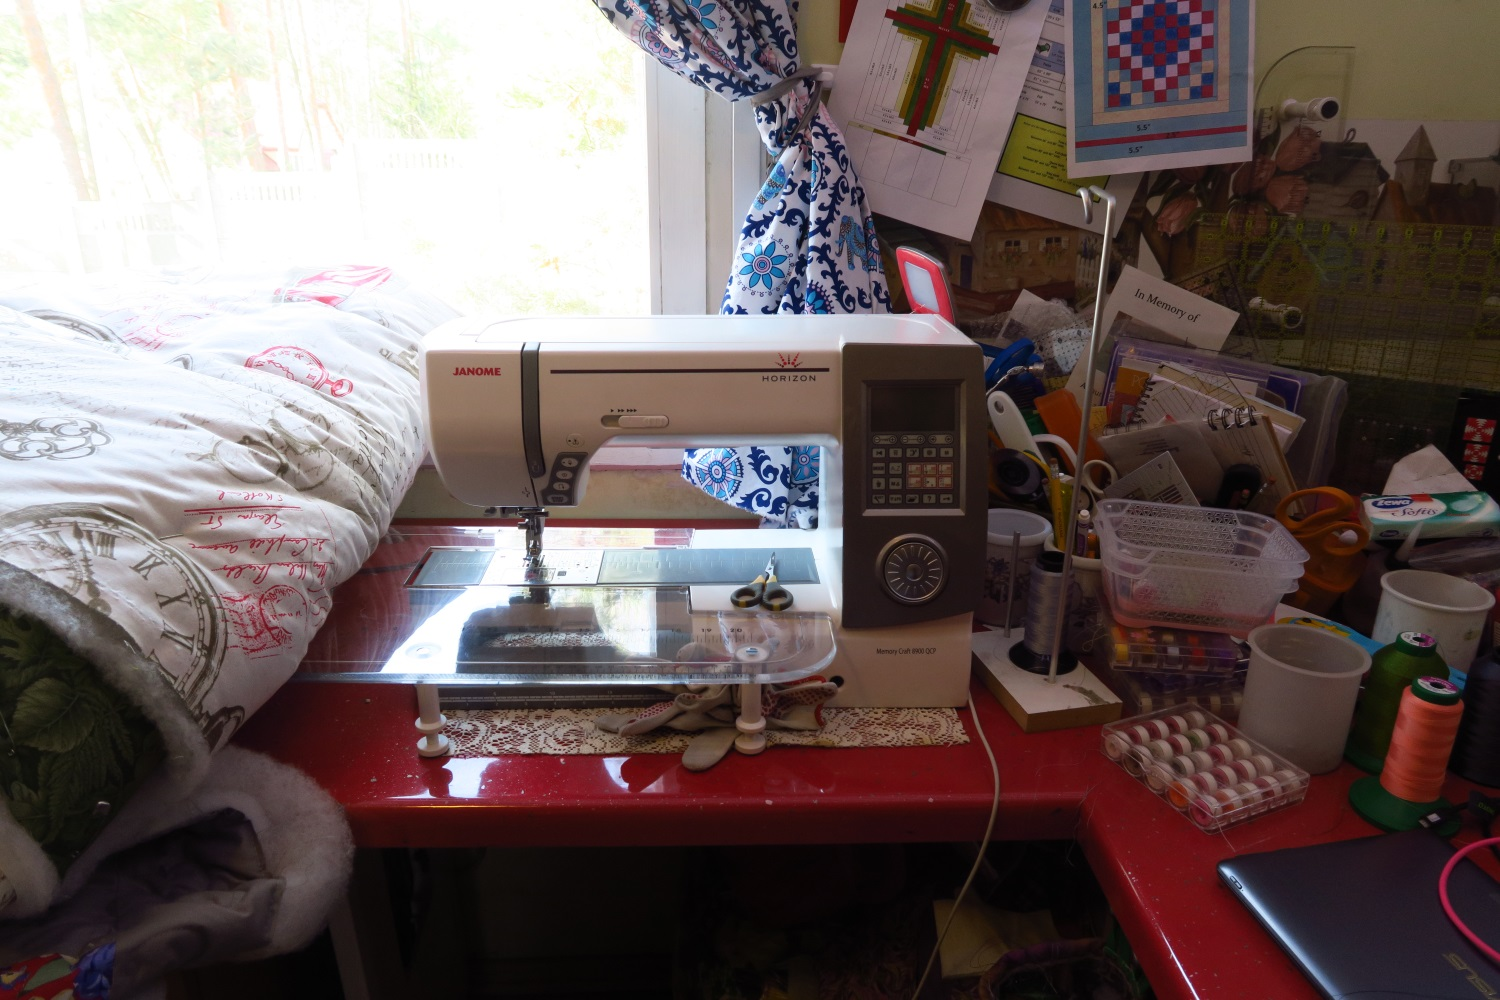 My Janome 8900 - my main quilting machine